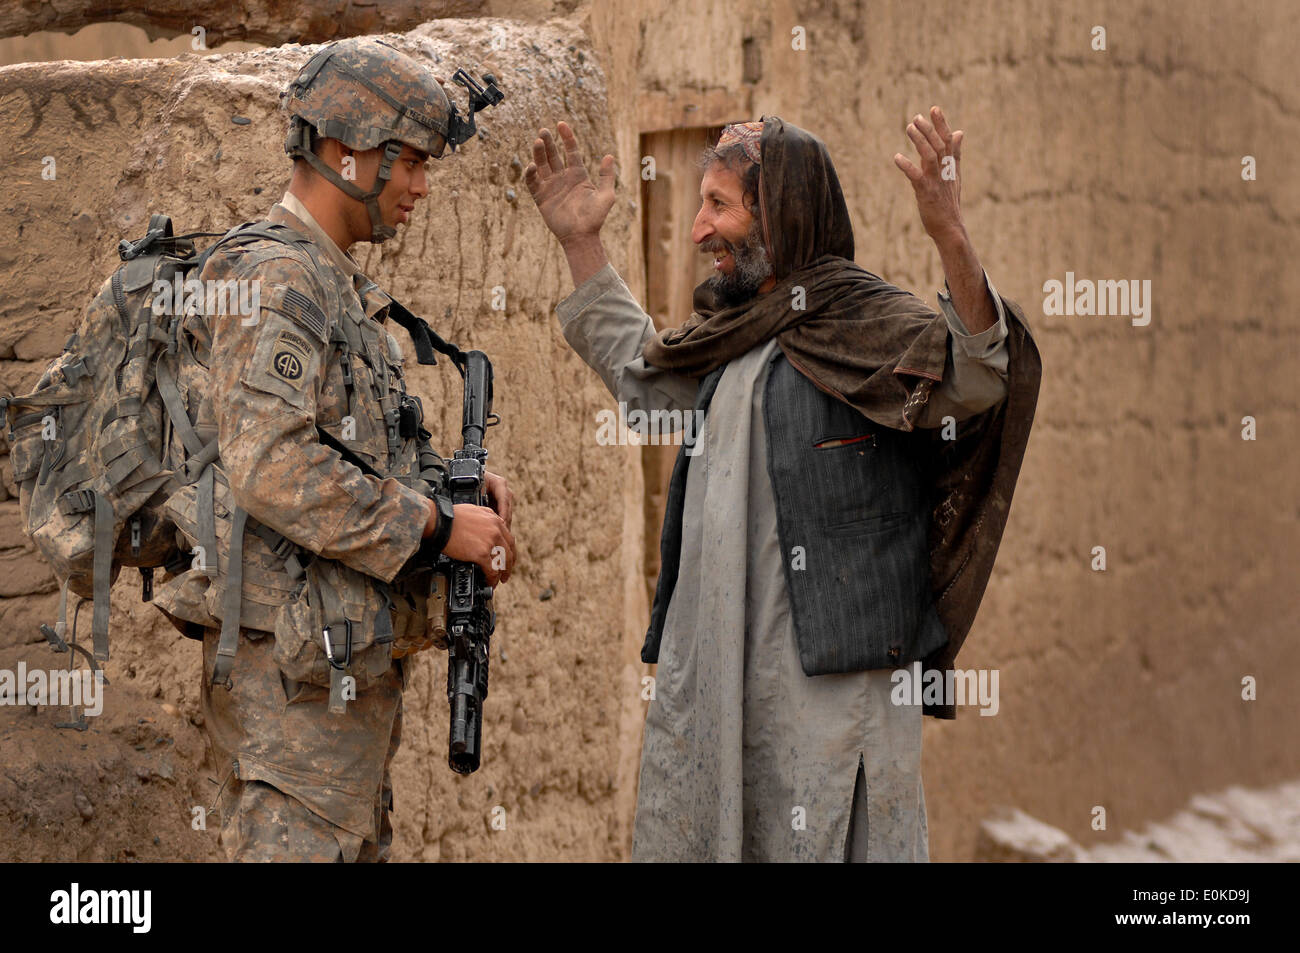 Private First Class Michael Elliott, Charlie Company 2508 Task Force Furry, talks with Mohammad Dode, a village resident, Feb. - Stock Image